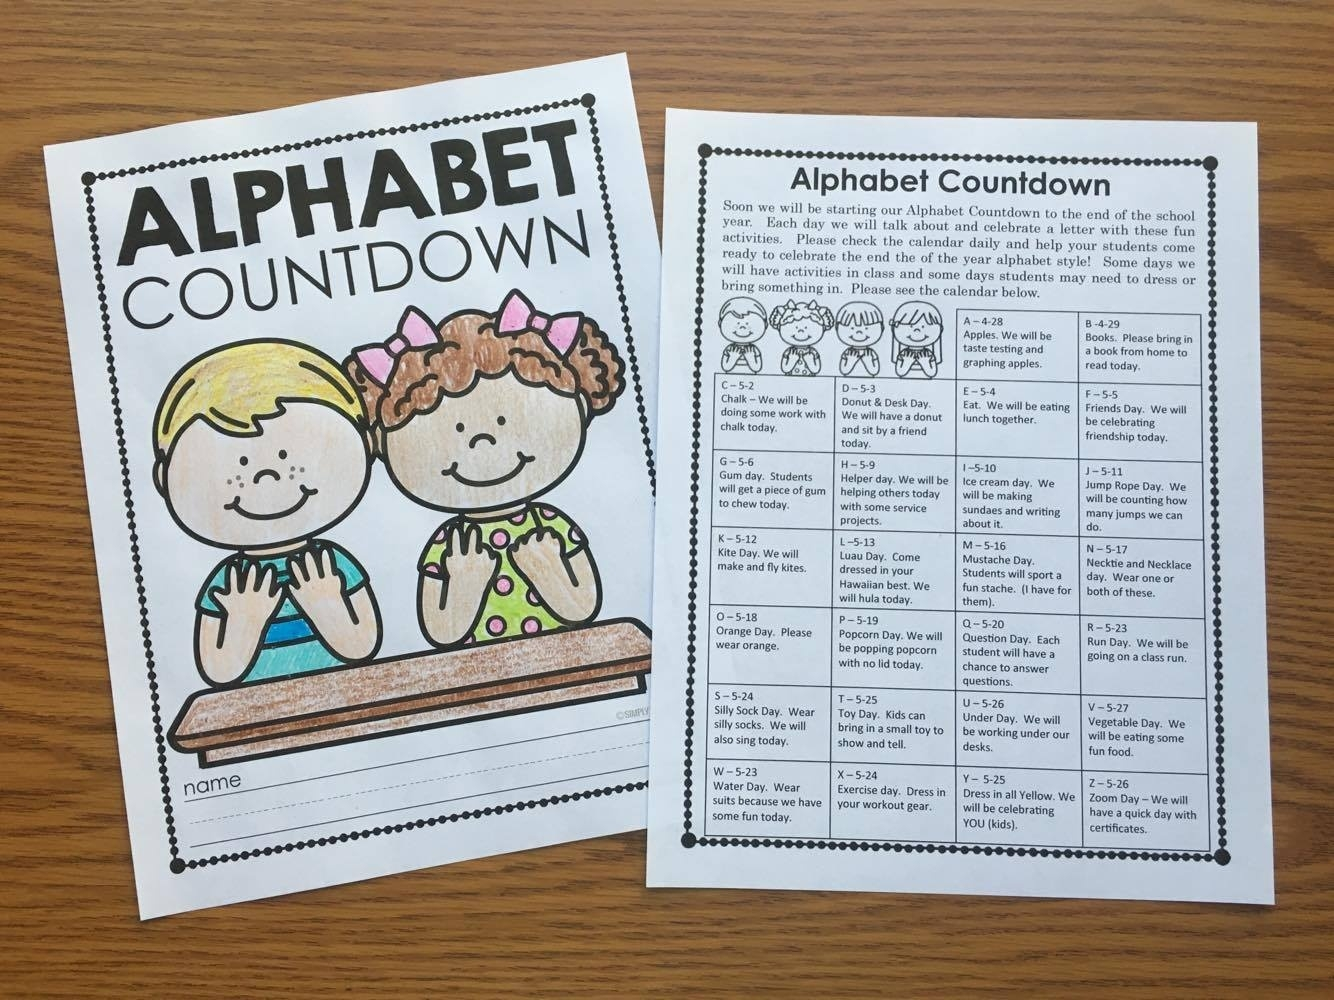 Alphabet Countdown Ideas - Simply Kinder_Countdown Calendar To End Of Year